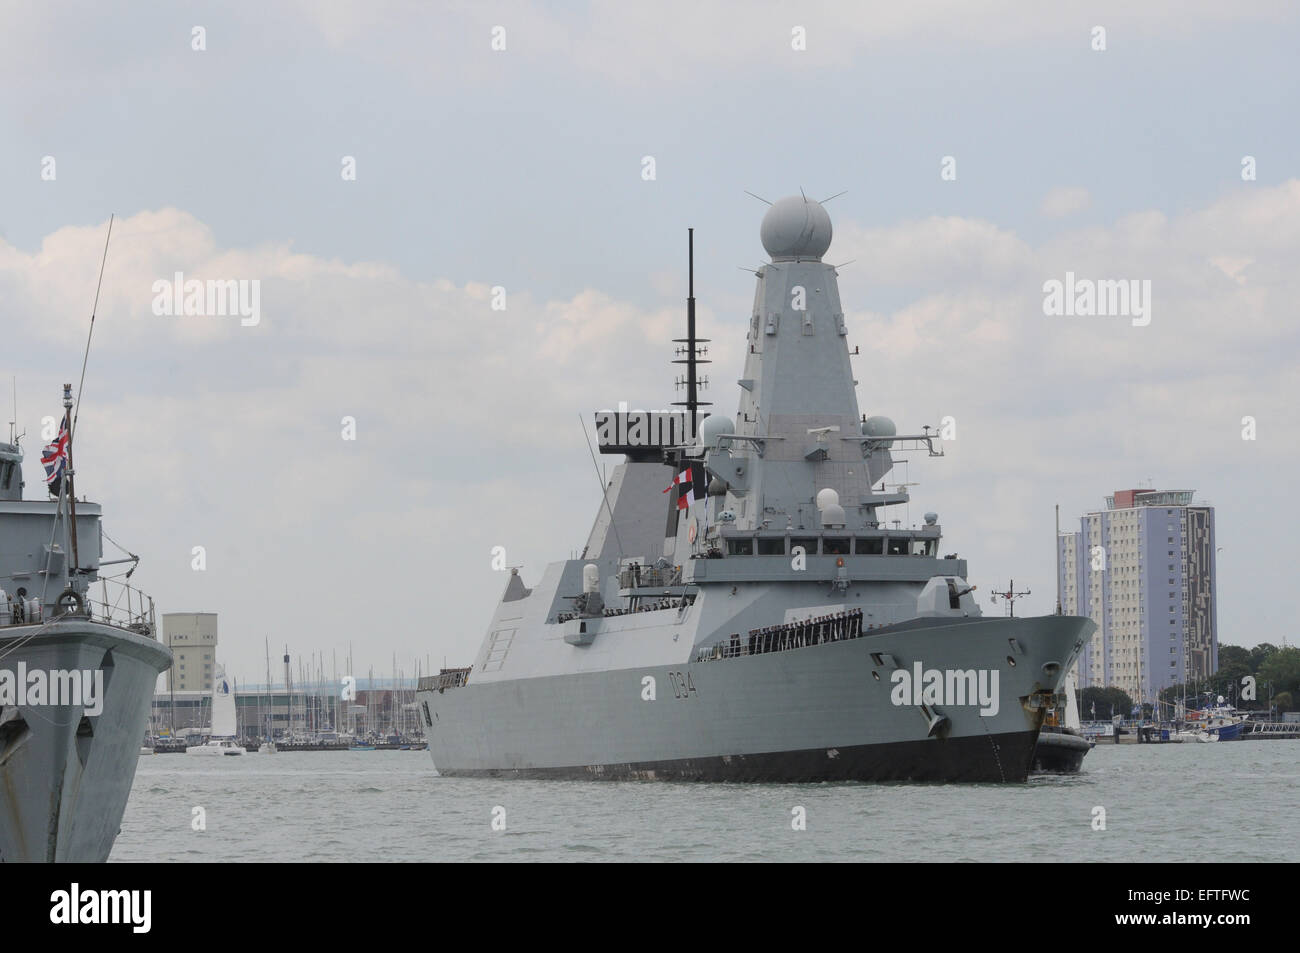 HMS DIAMOND RETURNS TO PORTSMOUTH AFTER HELPING TO BANISH CHEMICAL WEAPONS FROM SYRIA. PIC MIKE WALKER, MIKE WALKER - Stock Image